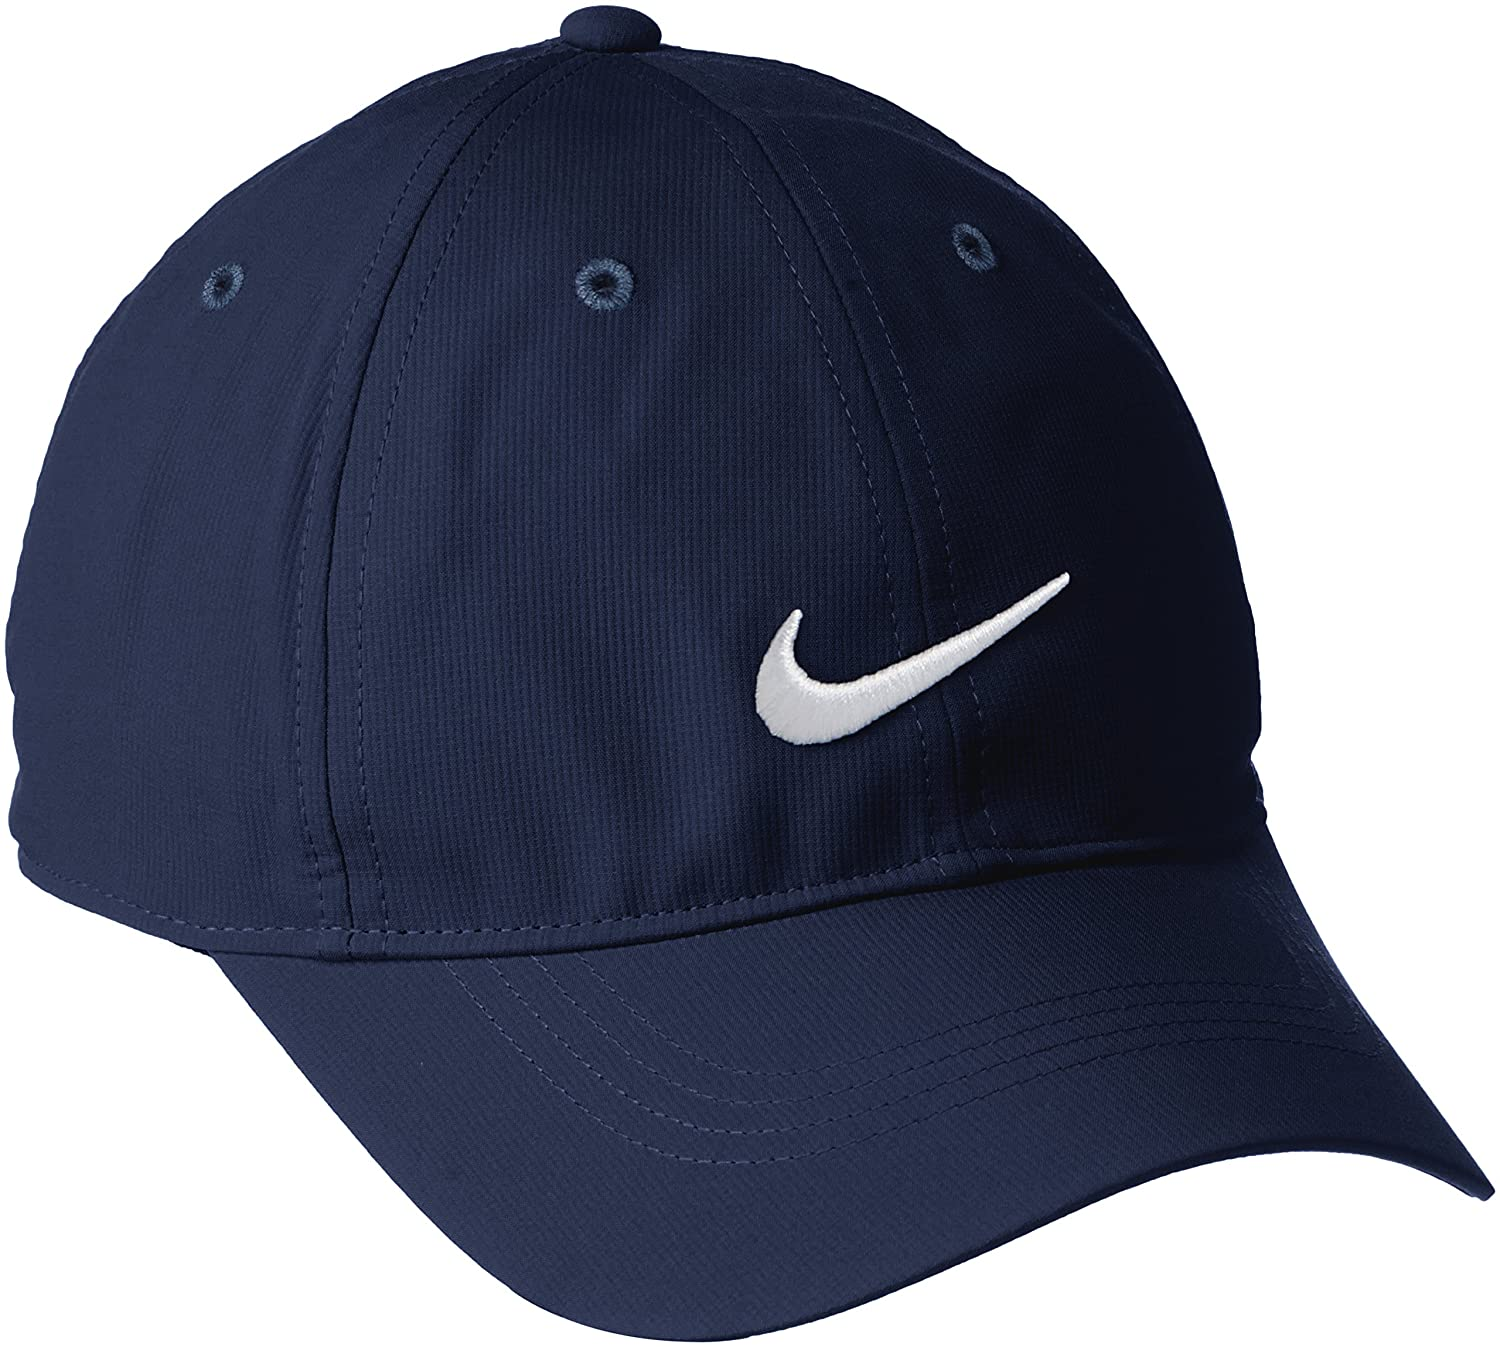 74fef782e11 Amazon.com   Nike Mens Golf Legacy91 Tech Adjustable Hat (Color   White Anthracite Black)   Sports   Outdoors